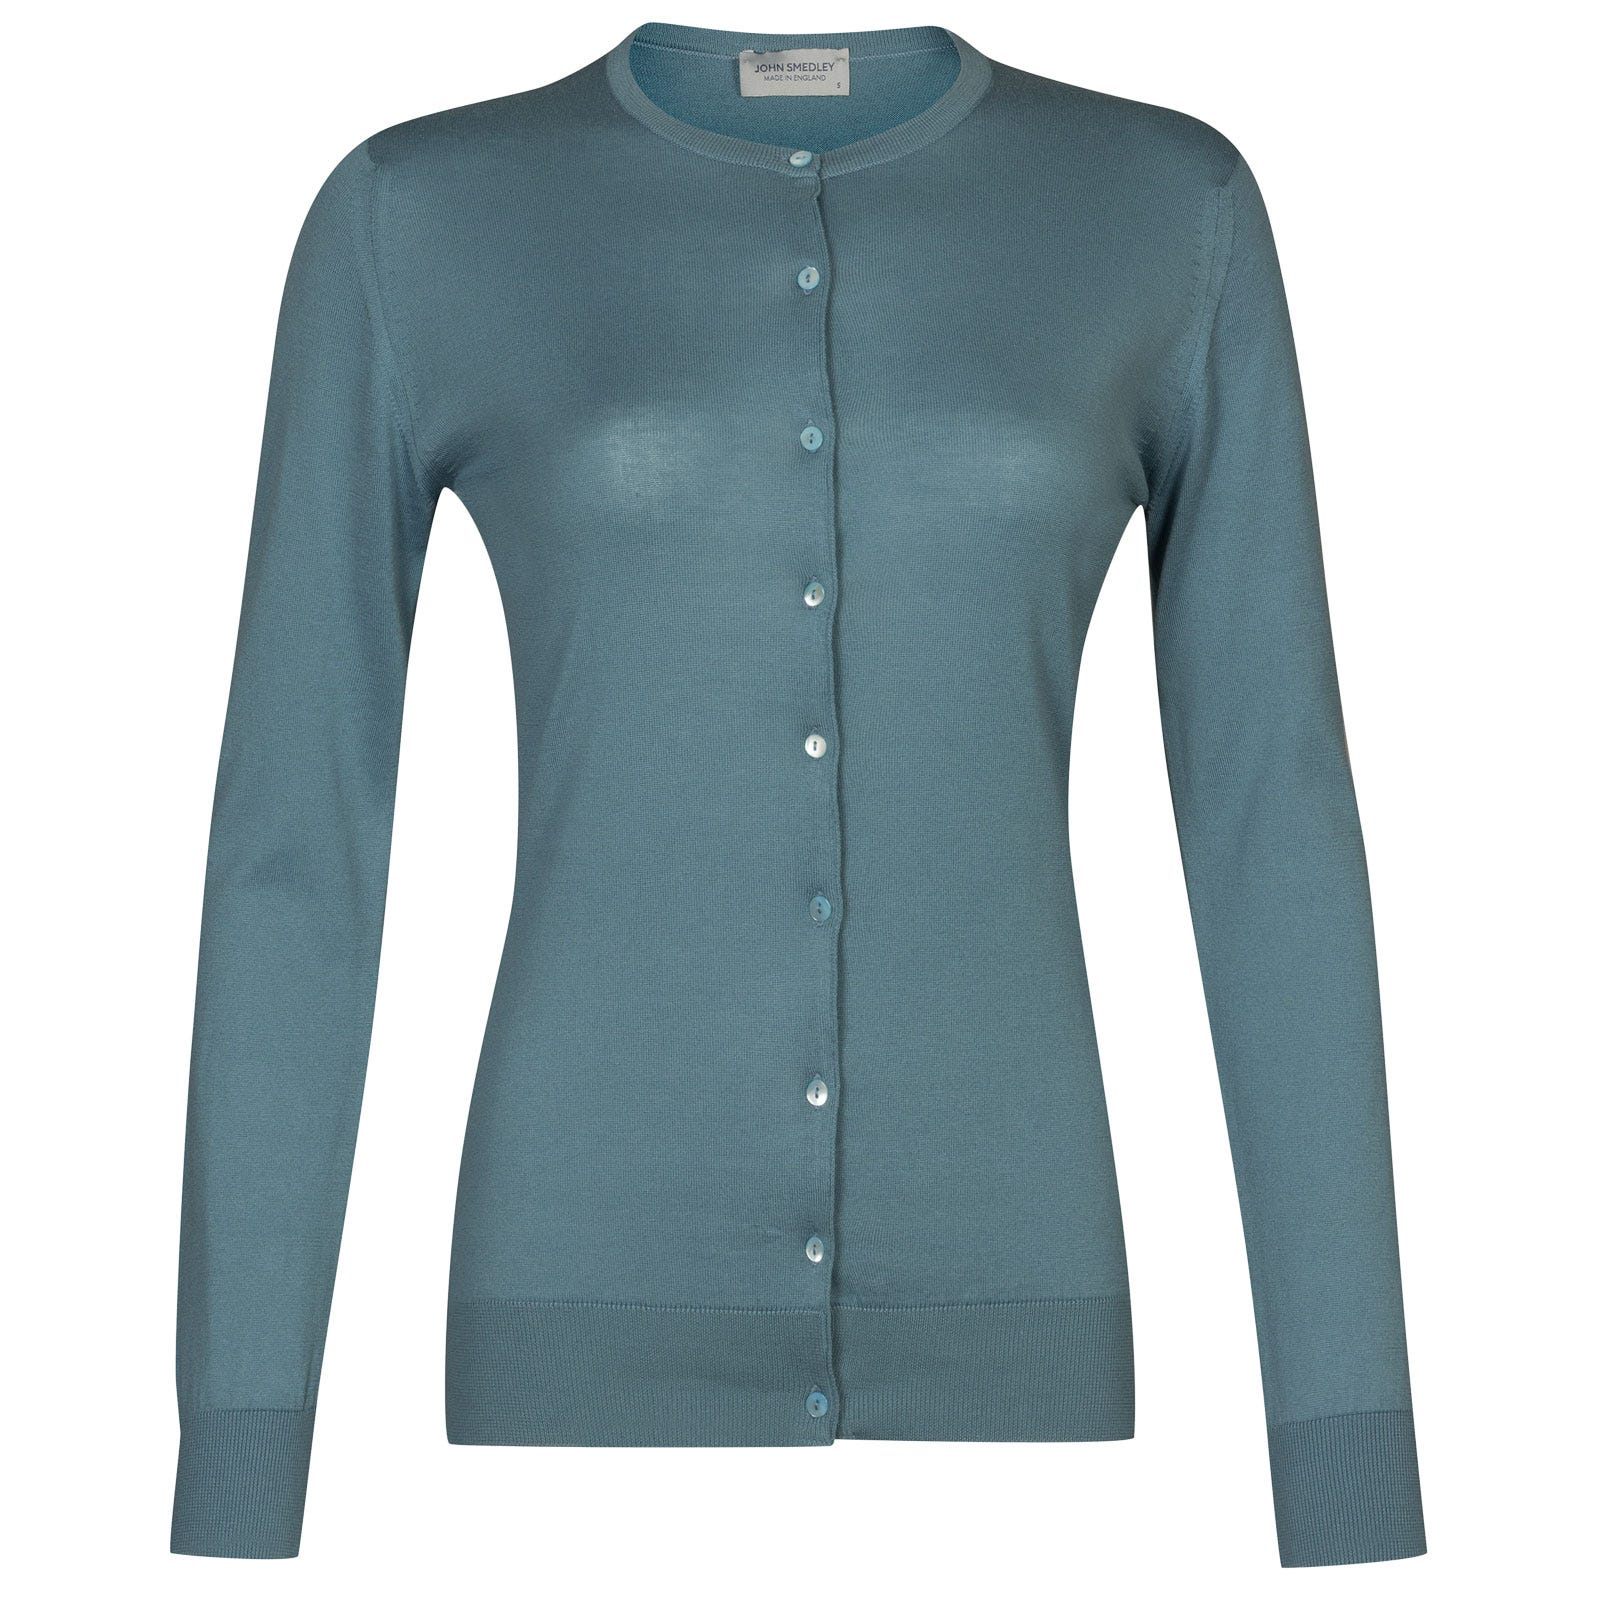 John Smedley Islington Sea Island Cotton Cardigan in Summit Blue-XL